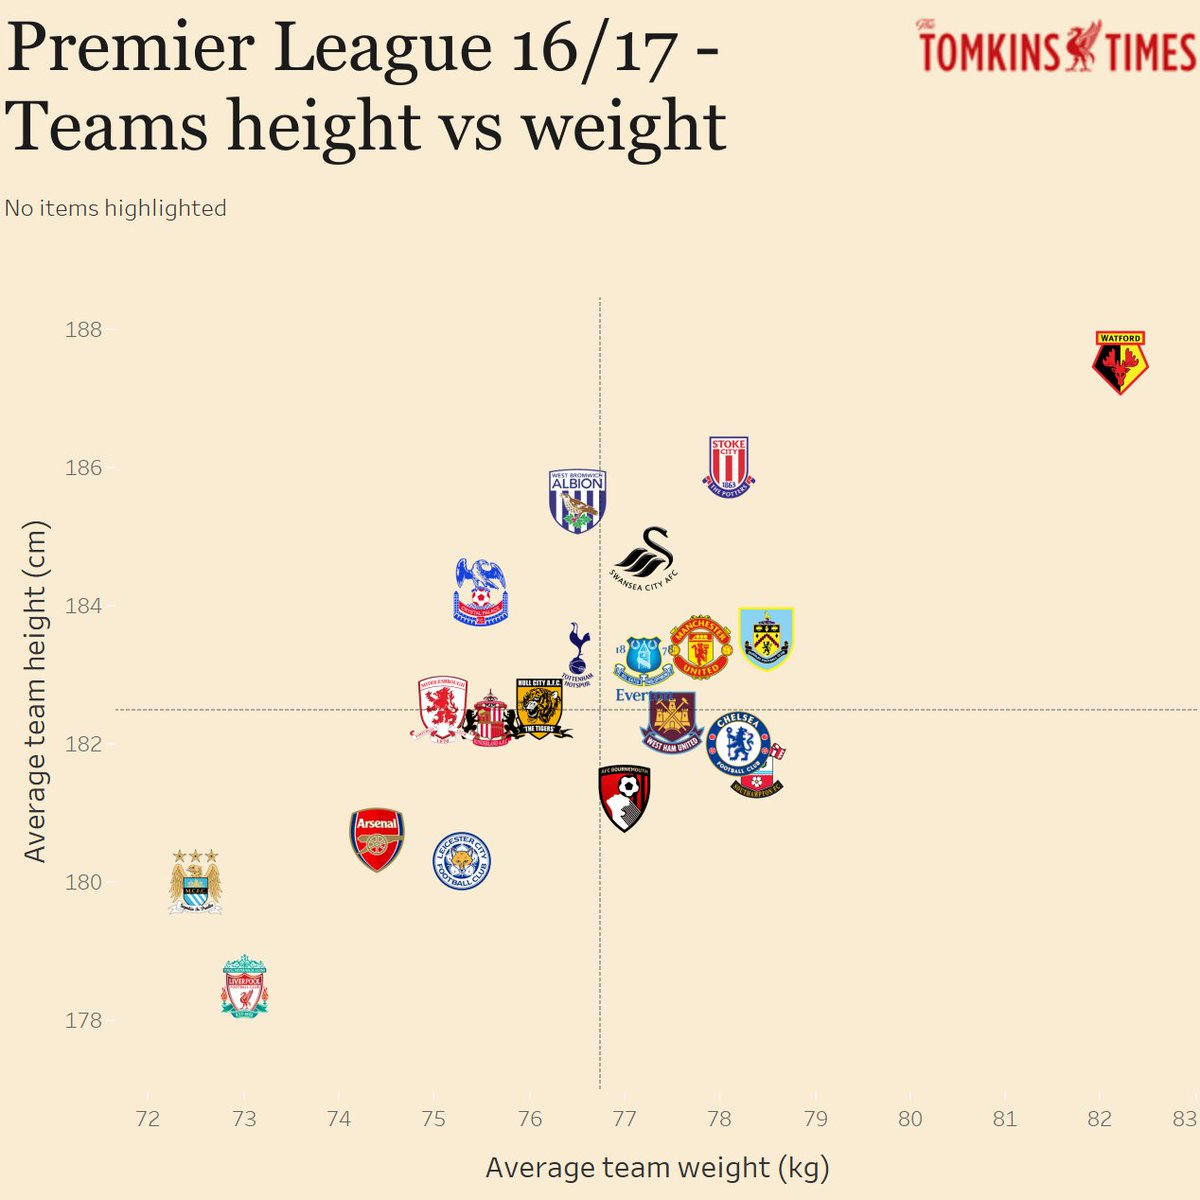 Premier league height vs weight